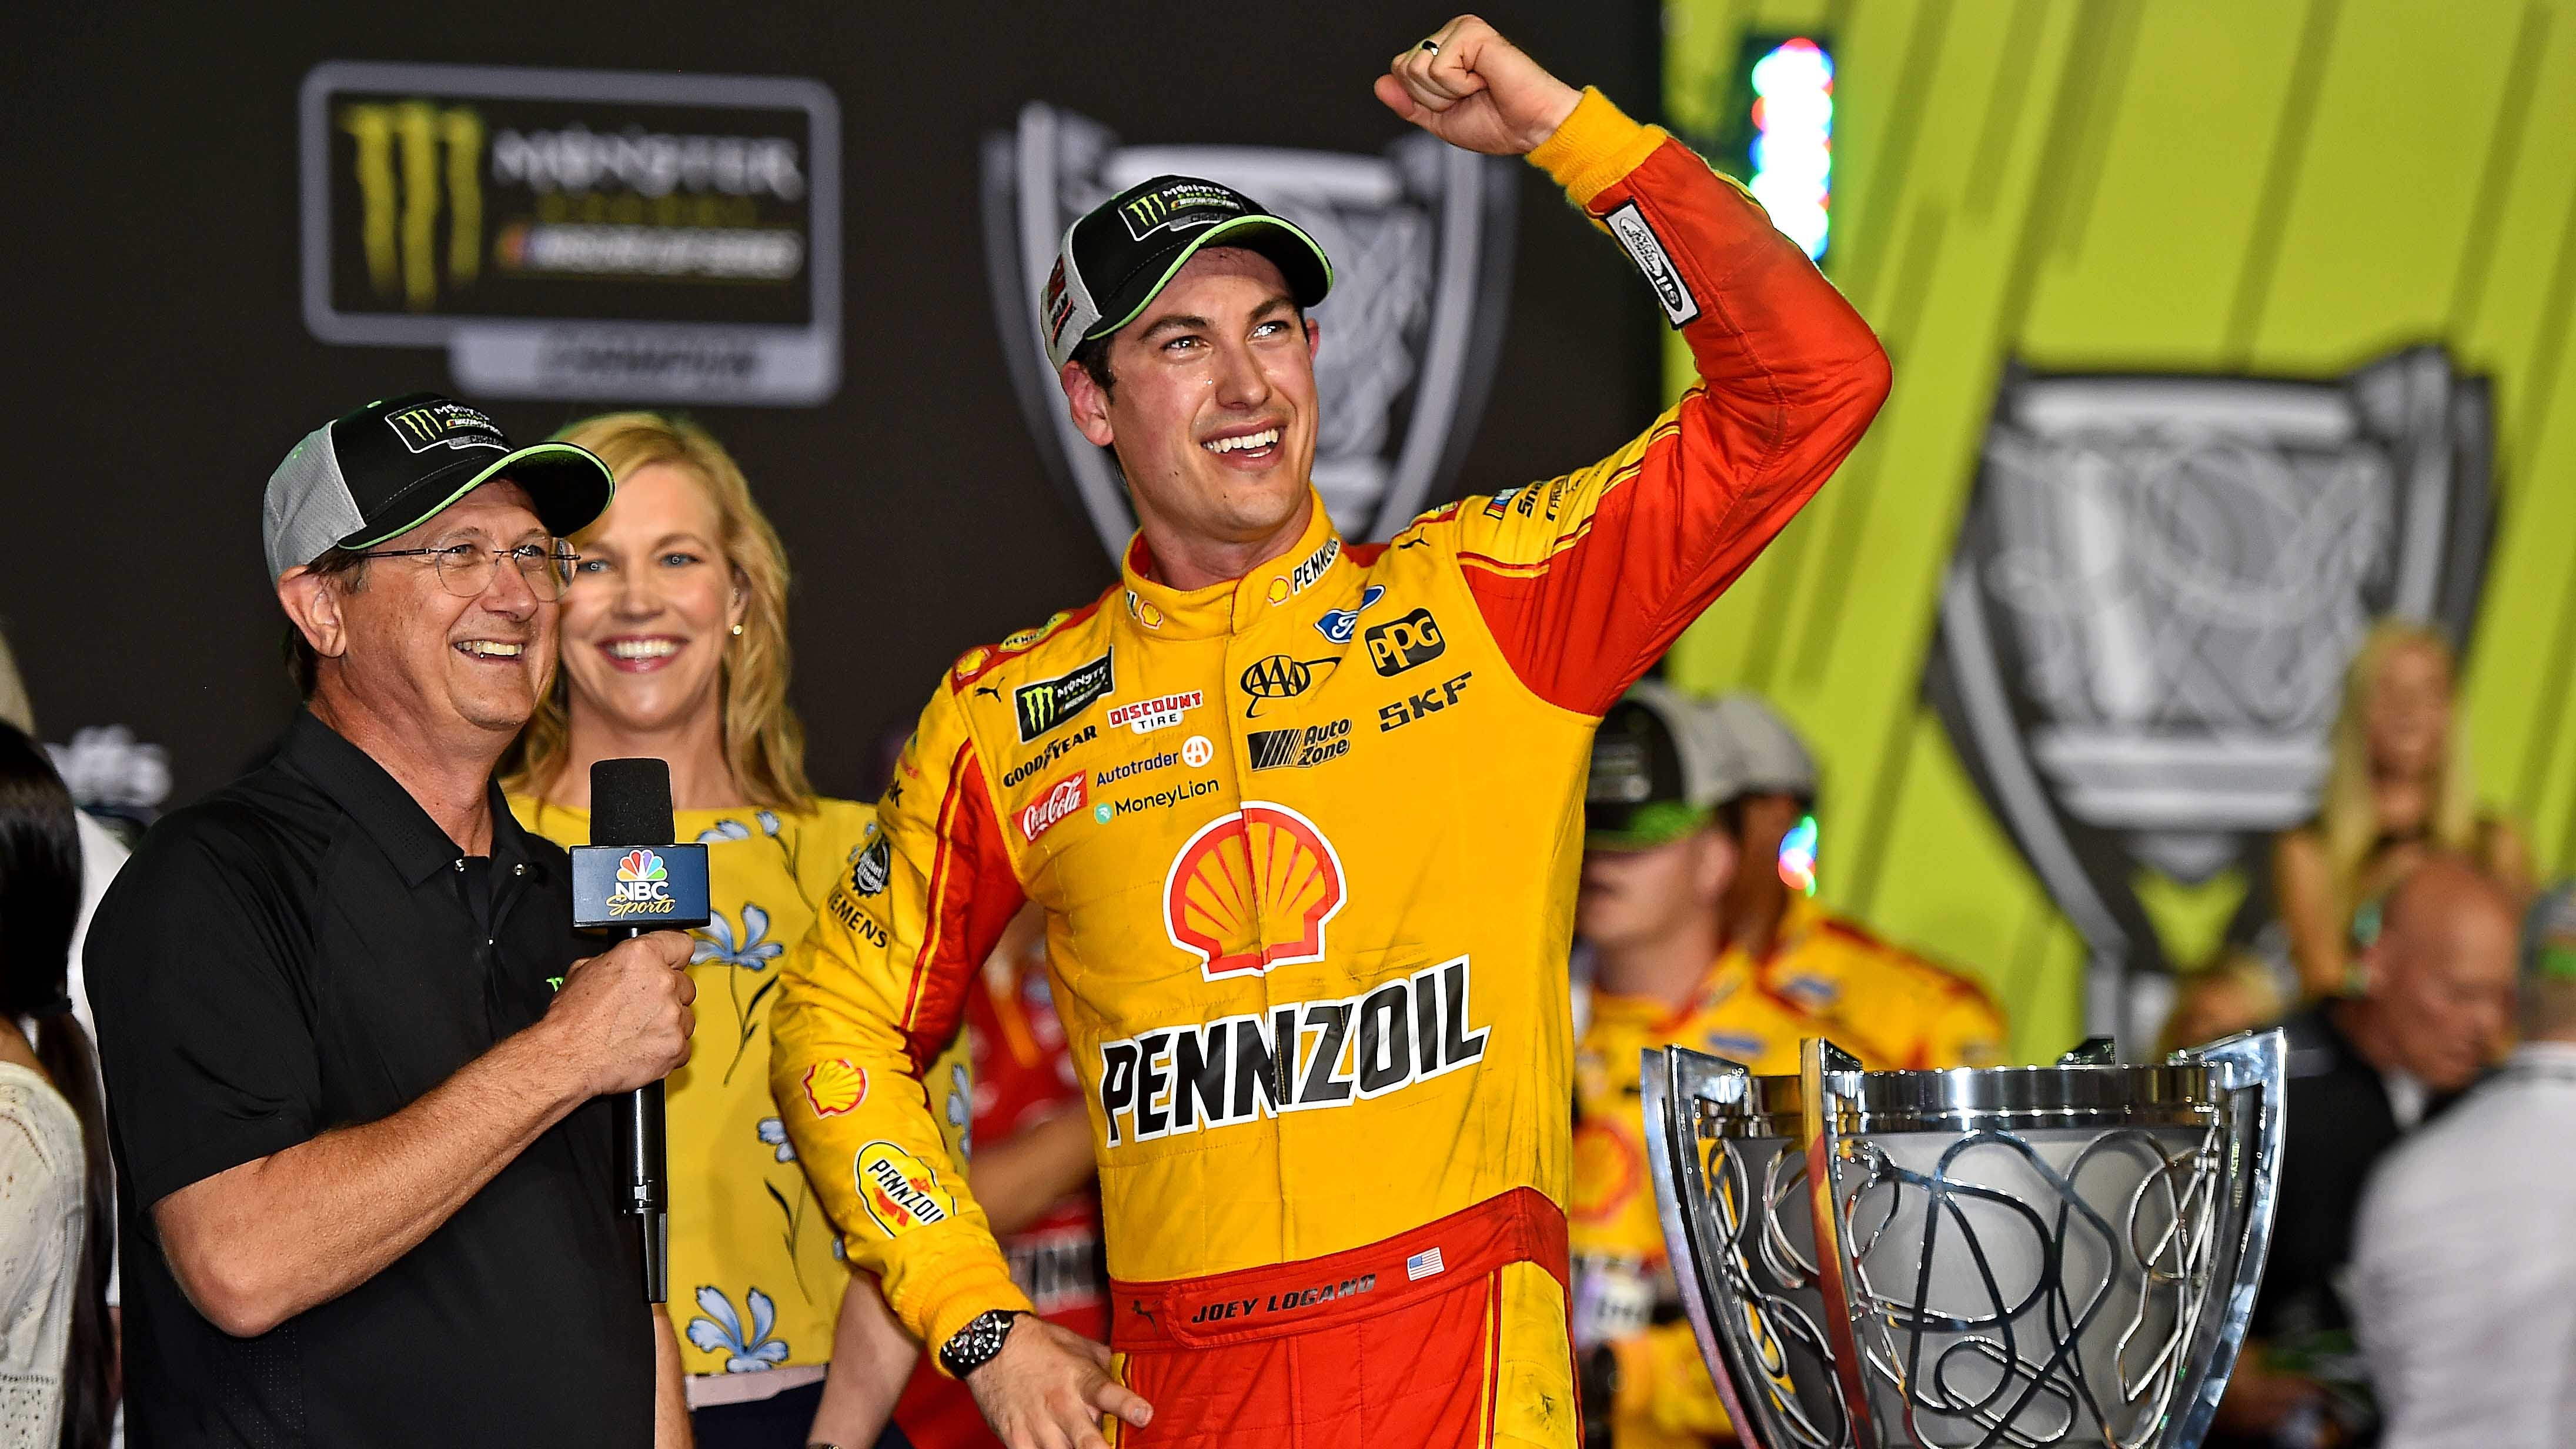 Joey Logano celebrates winning the Ford EcoBoost 400 and his first NASCAR Cup Series Championship, Sunday at Homestead-Miami Speedway.